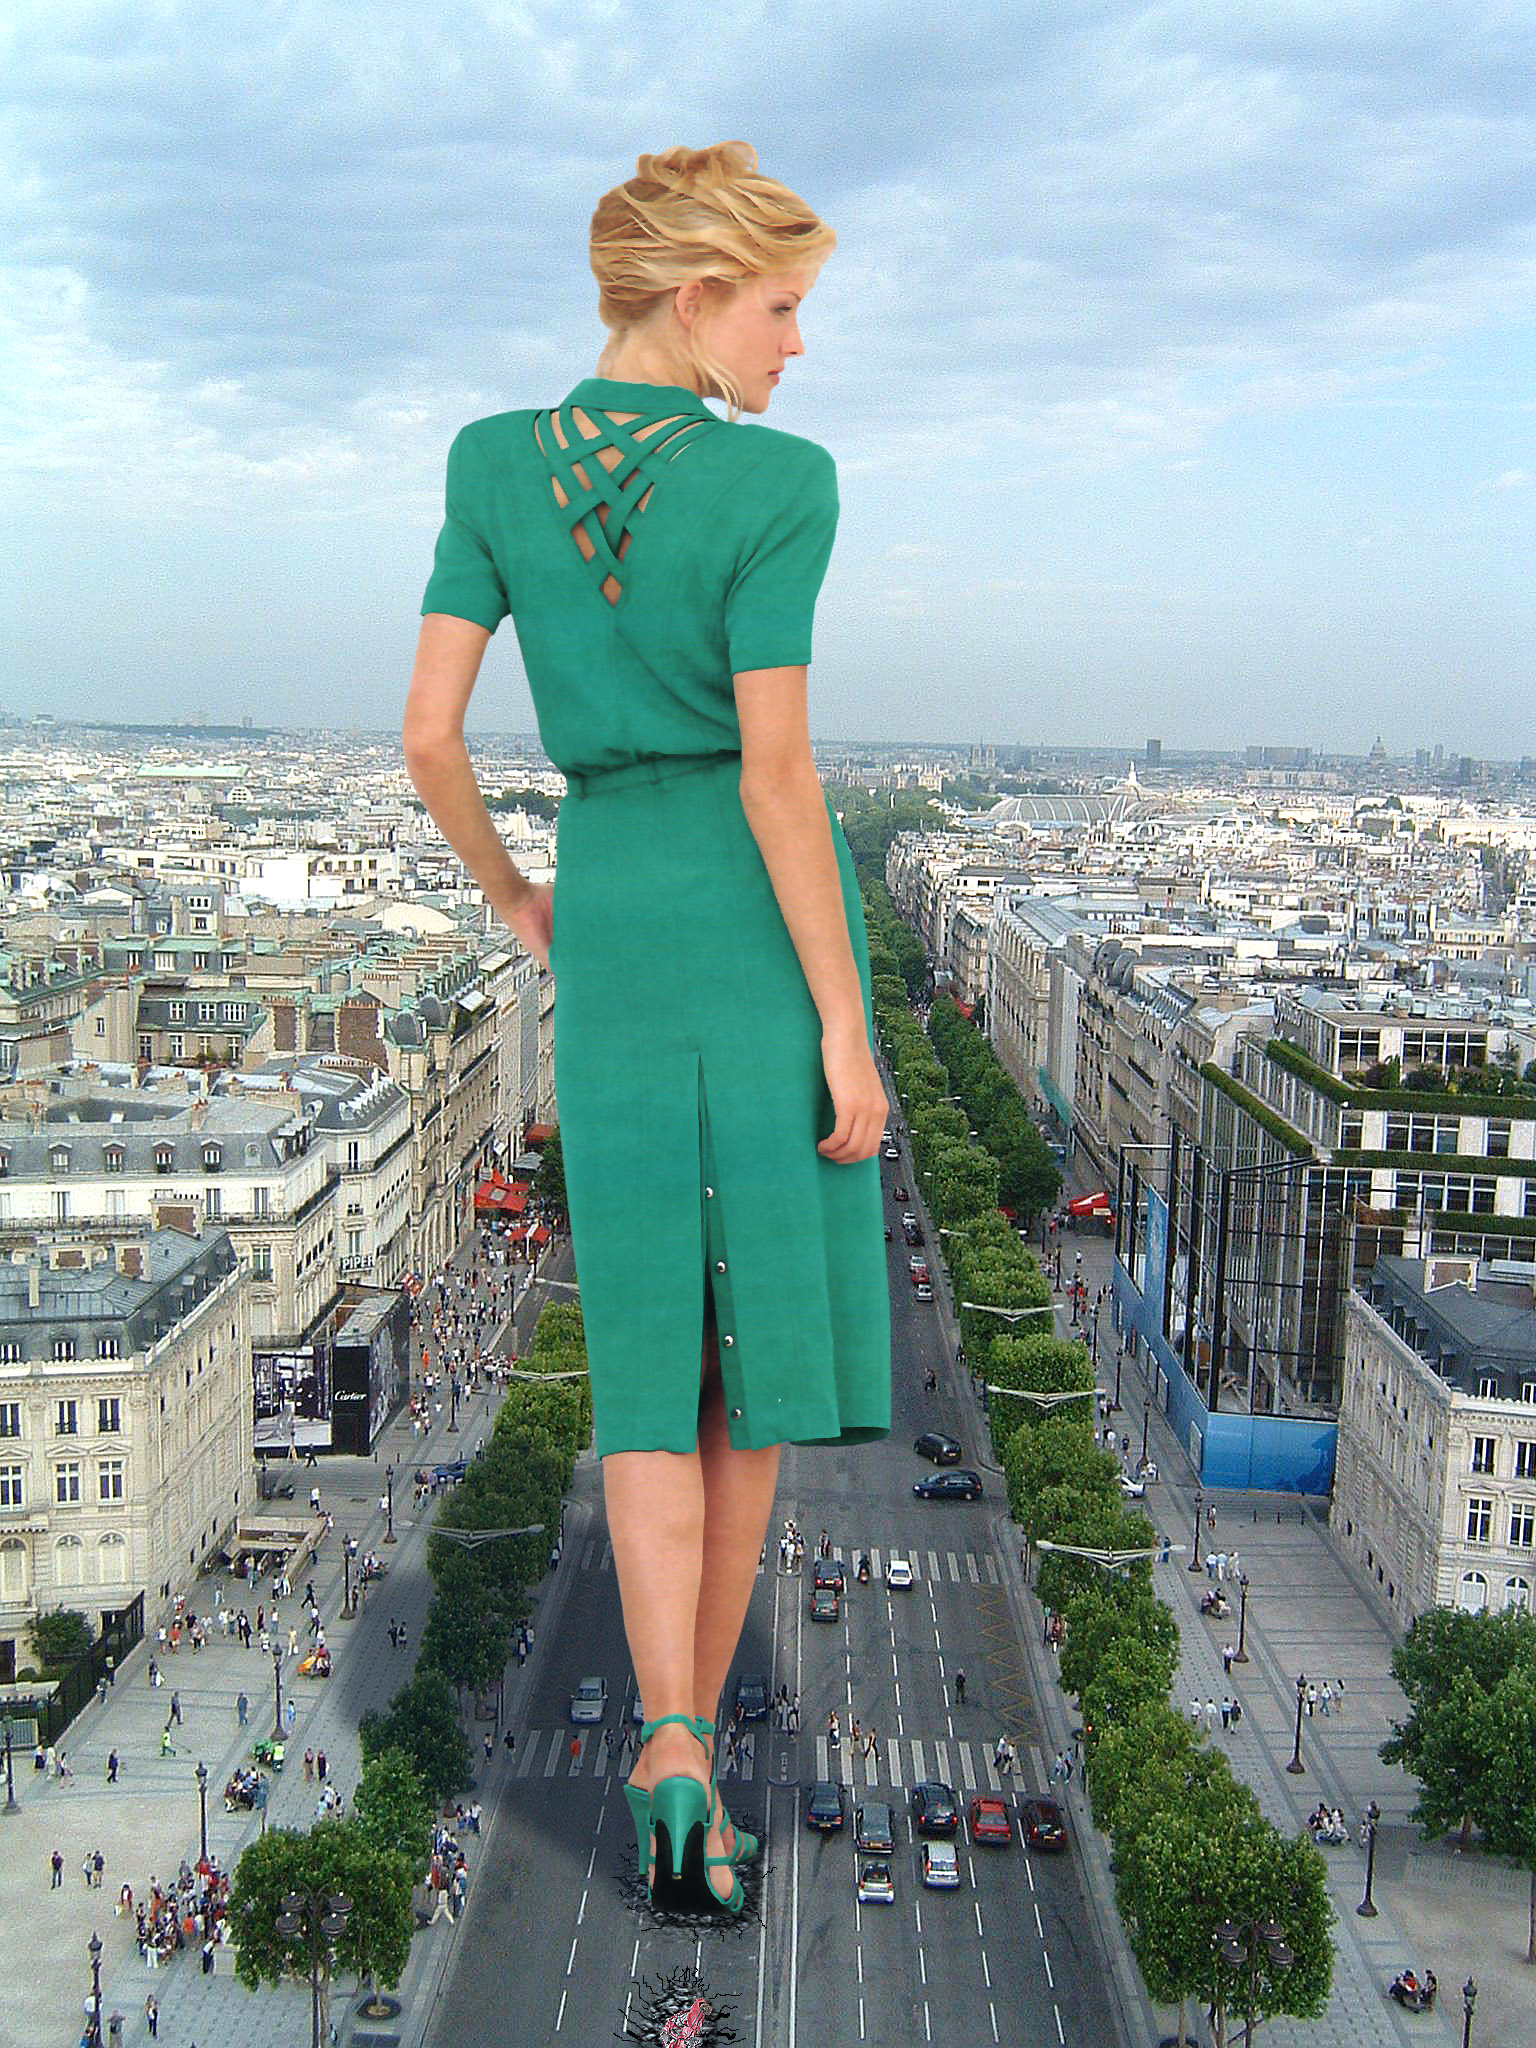 167152 - behind_view blonde cars city collage crushed_cars dress giantess green_dress high_heels sky street wonderslug